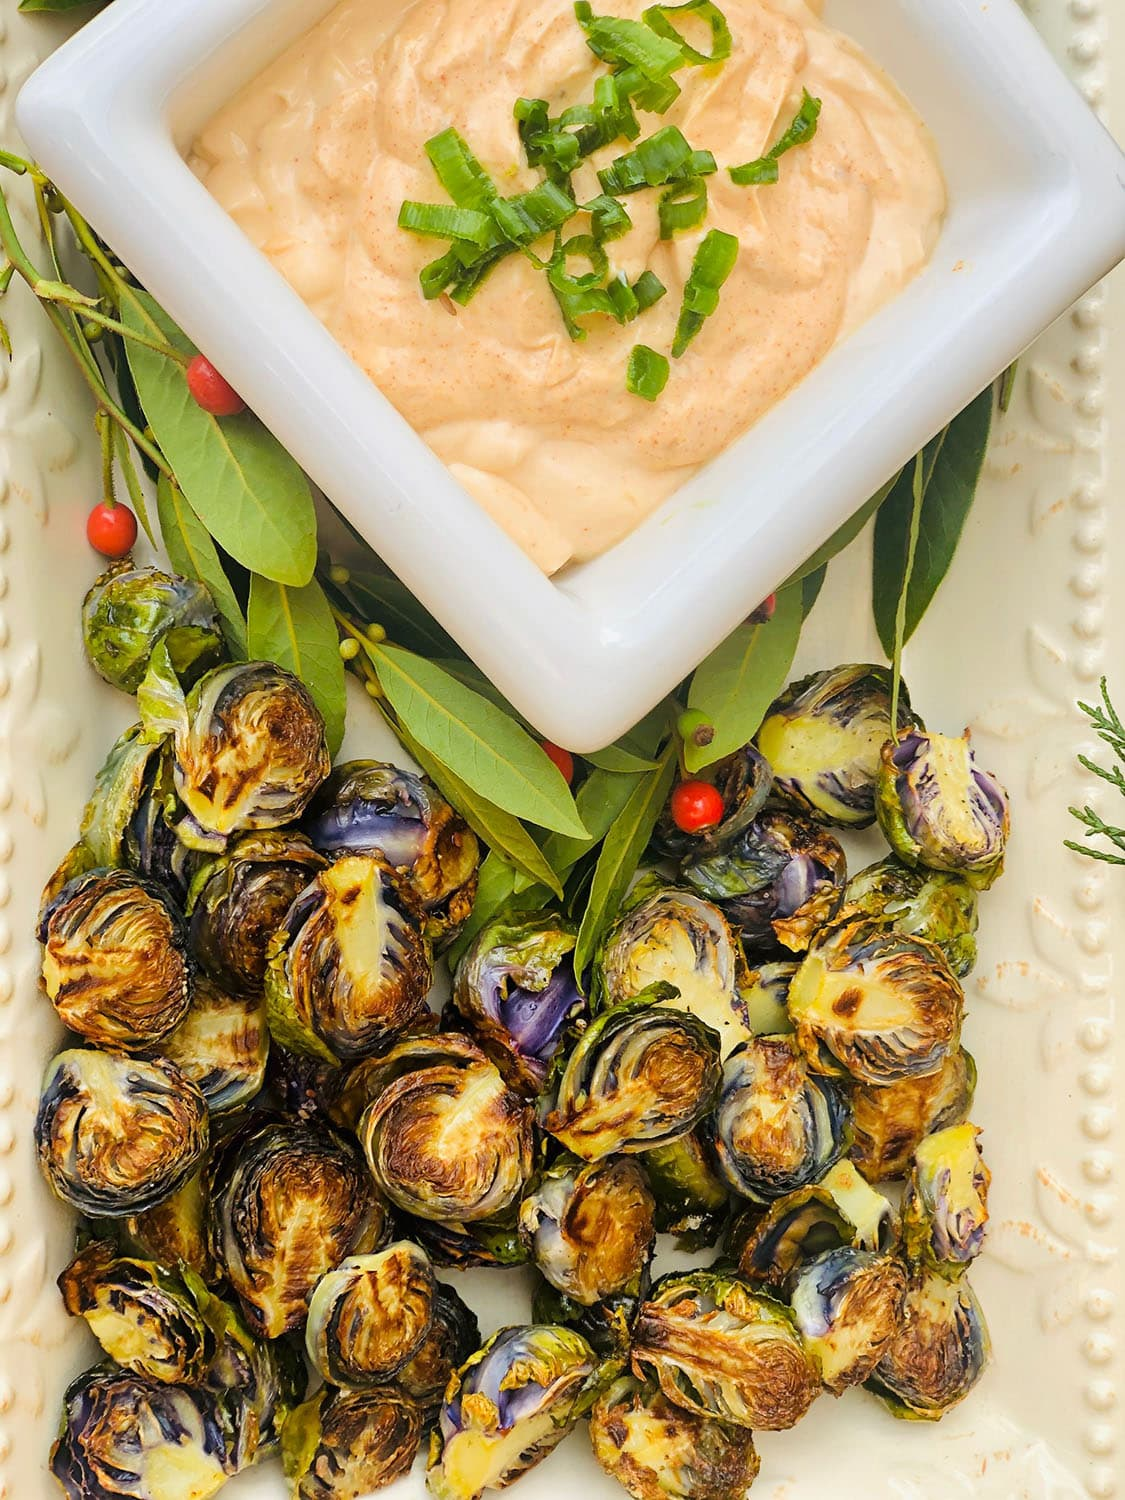 grilled brussel sprouts with chipotle aioli